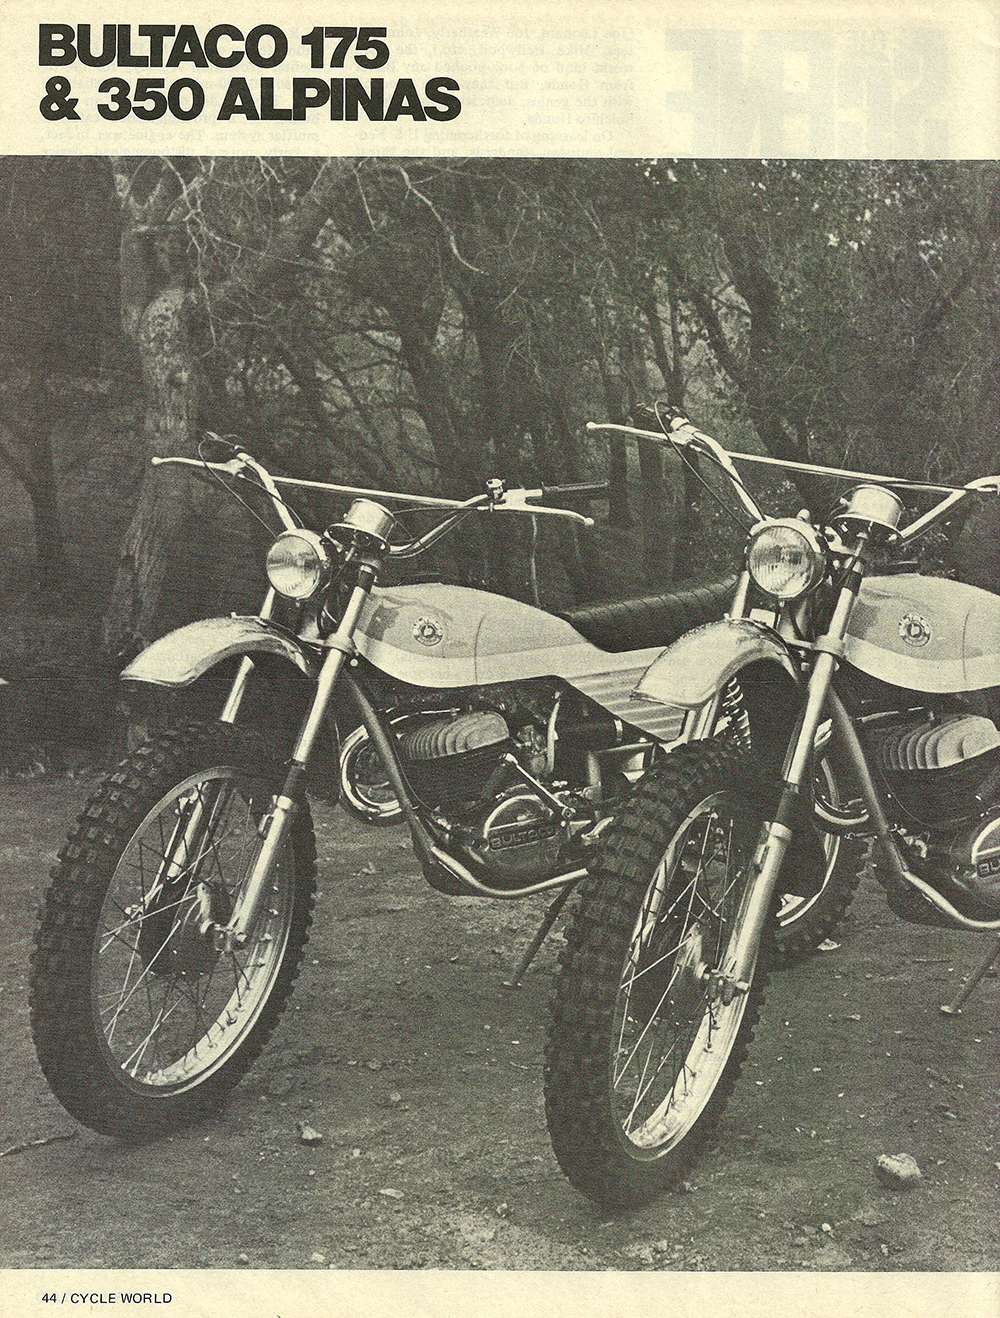 1973 Bultaco Alpina 175 350 road test 01.jpg